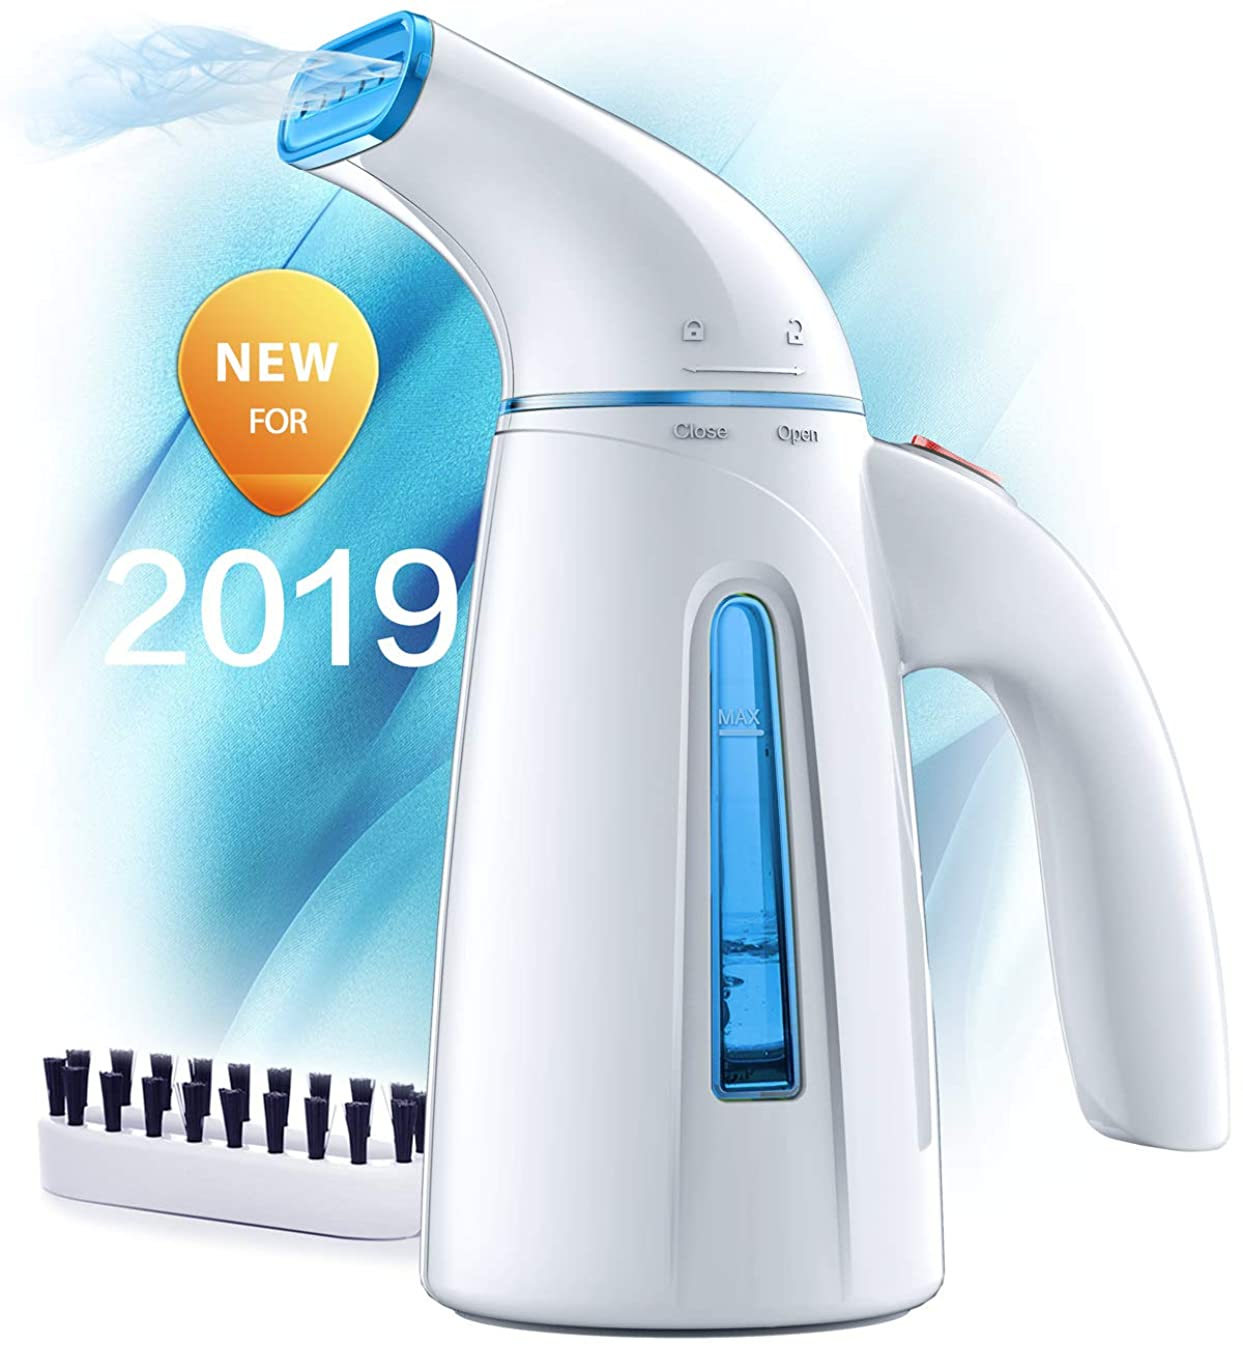 OGHom Steamer for Clothes Steamer, Handheld Clothing Steamer for Garment, 240ml Portable Mini Travel Fabric Steamer for Home and Travel